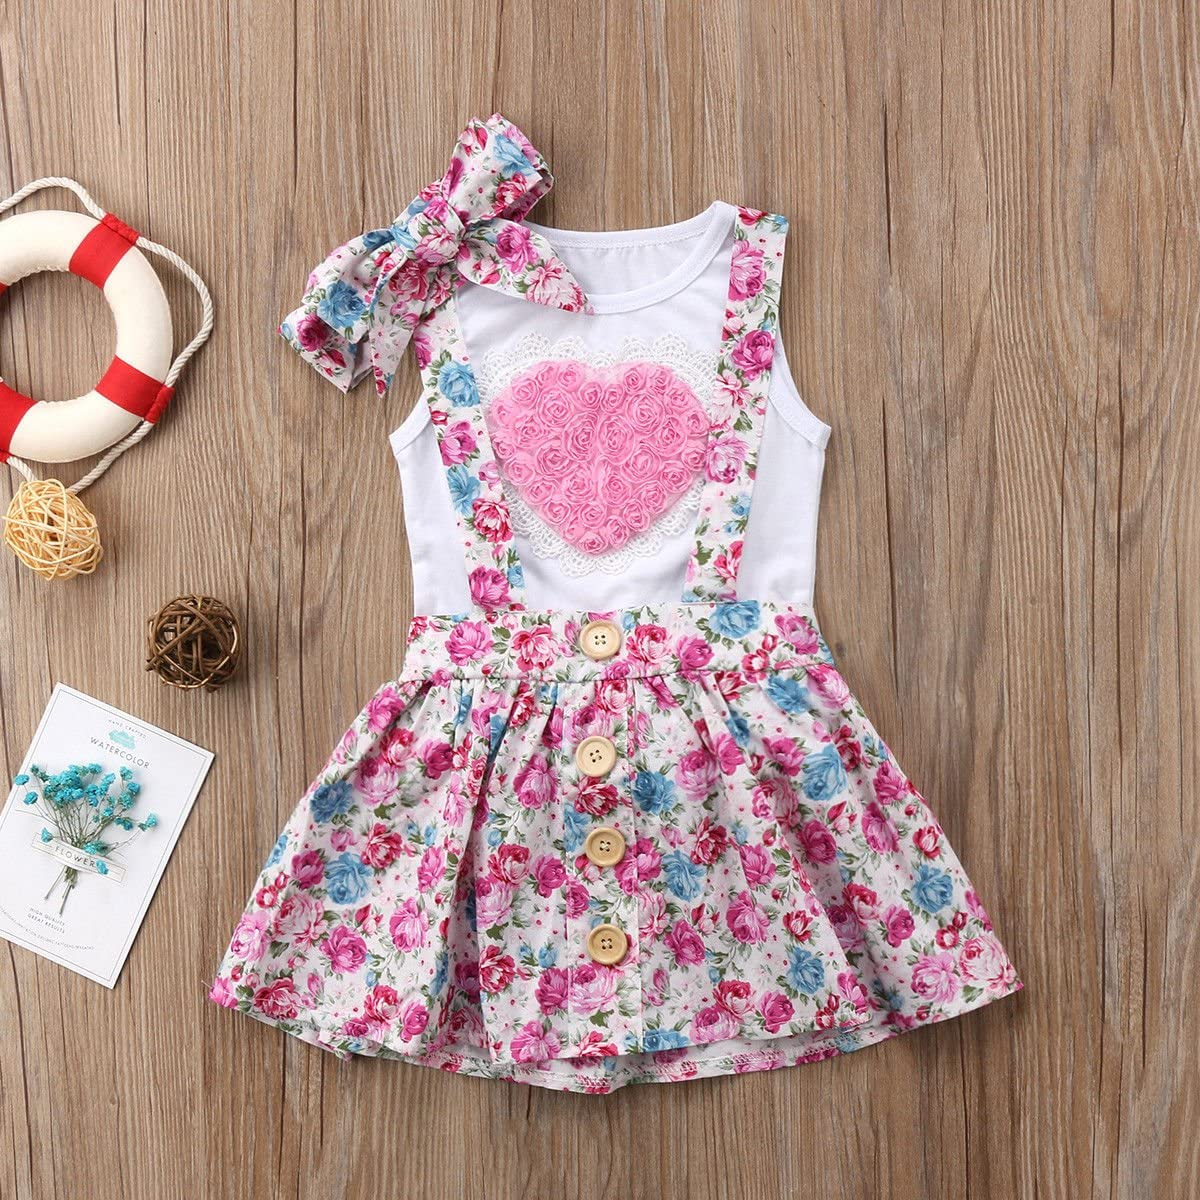 Little Big Sister Matching Love Vest Floral Shorts Or Skirt Headband Outfits Set